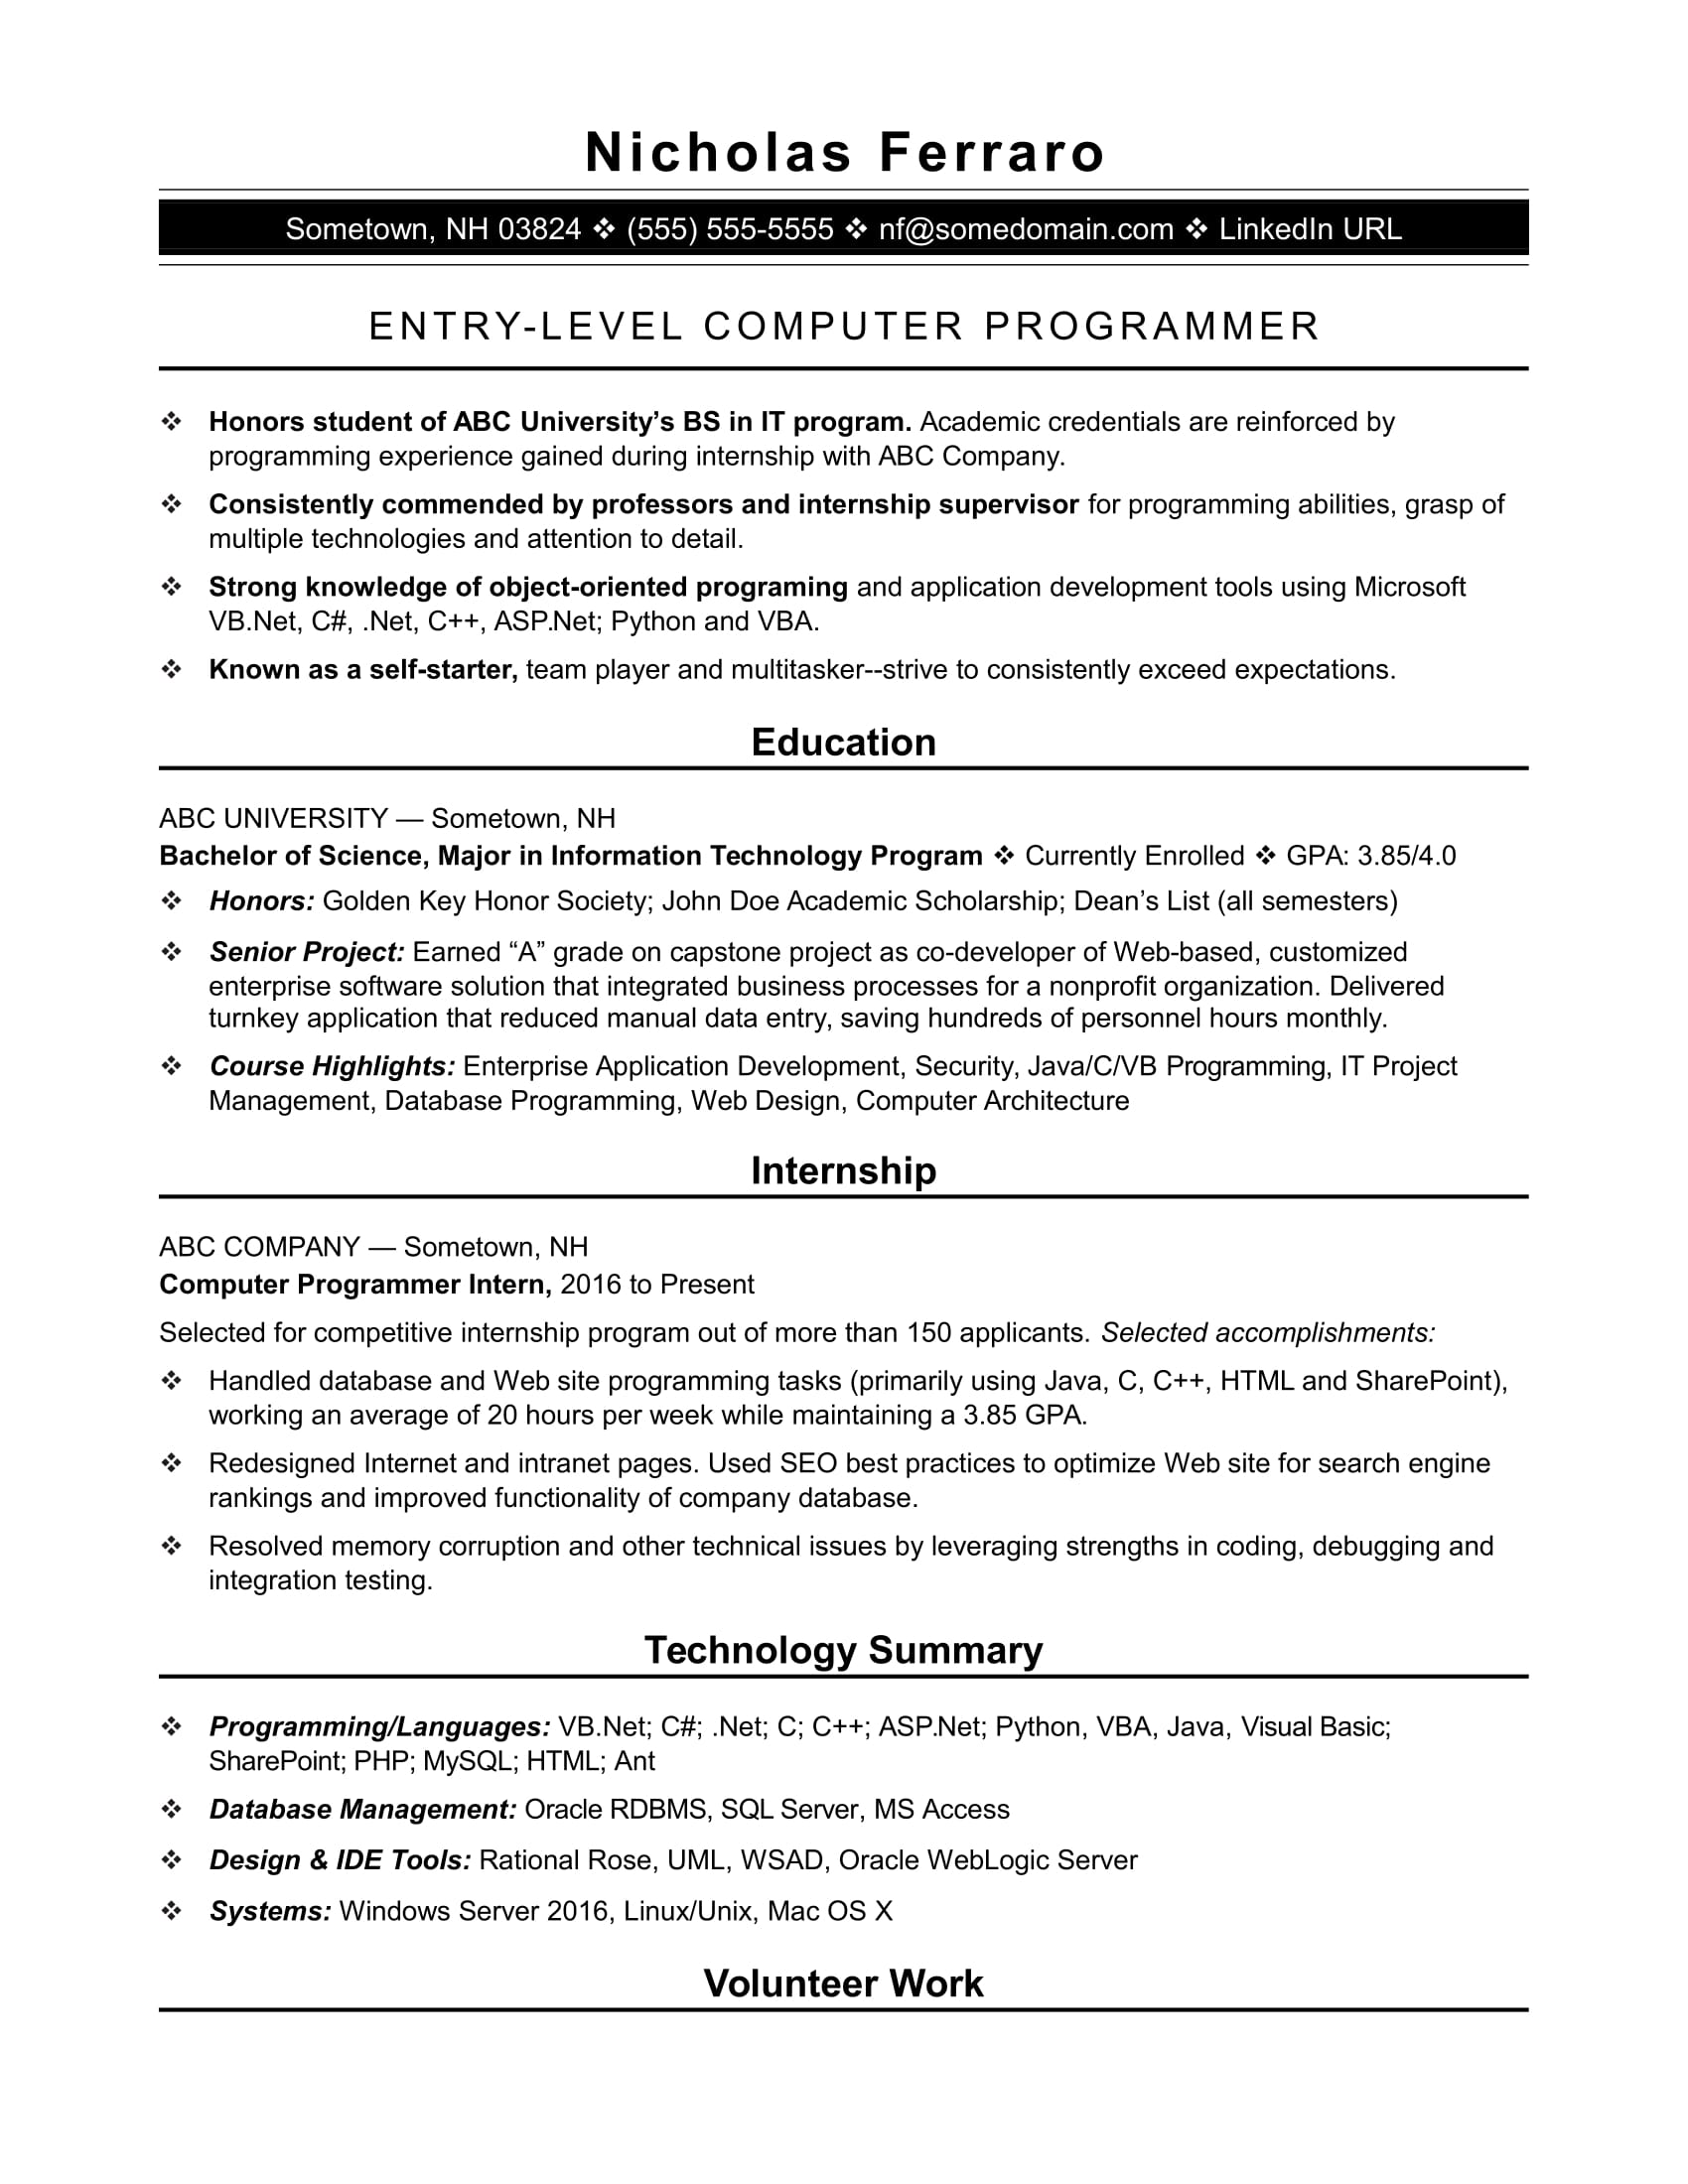 sample resume for an entry level computer programmer monster housekeeping example hotel Resume Computer Programmer Resume Sample